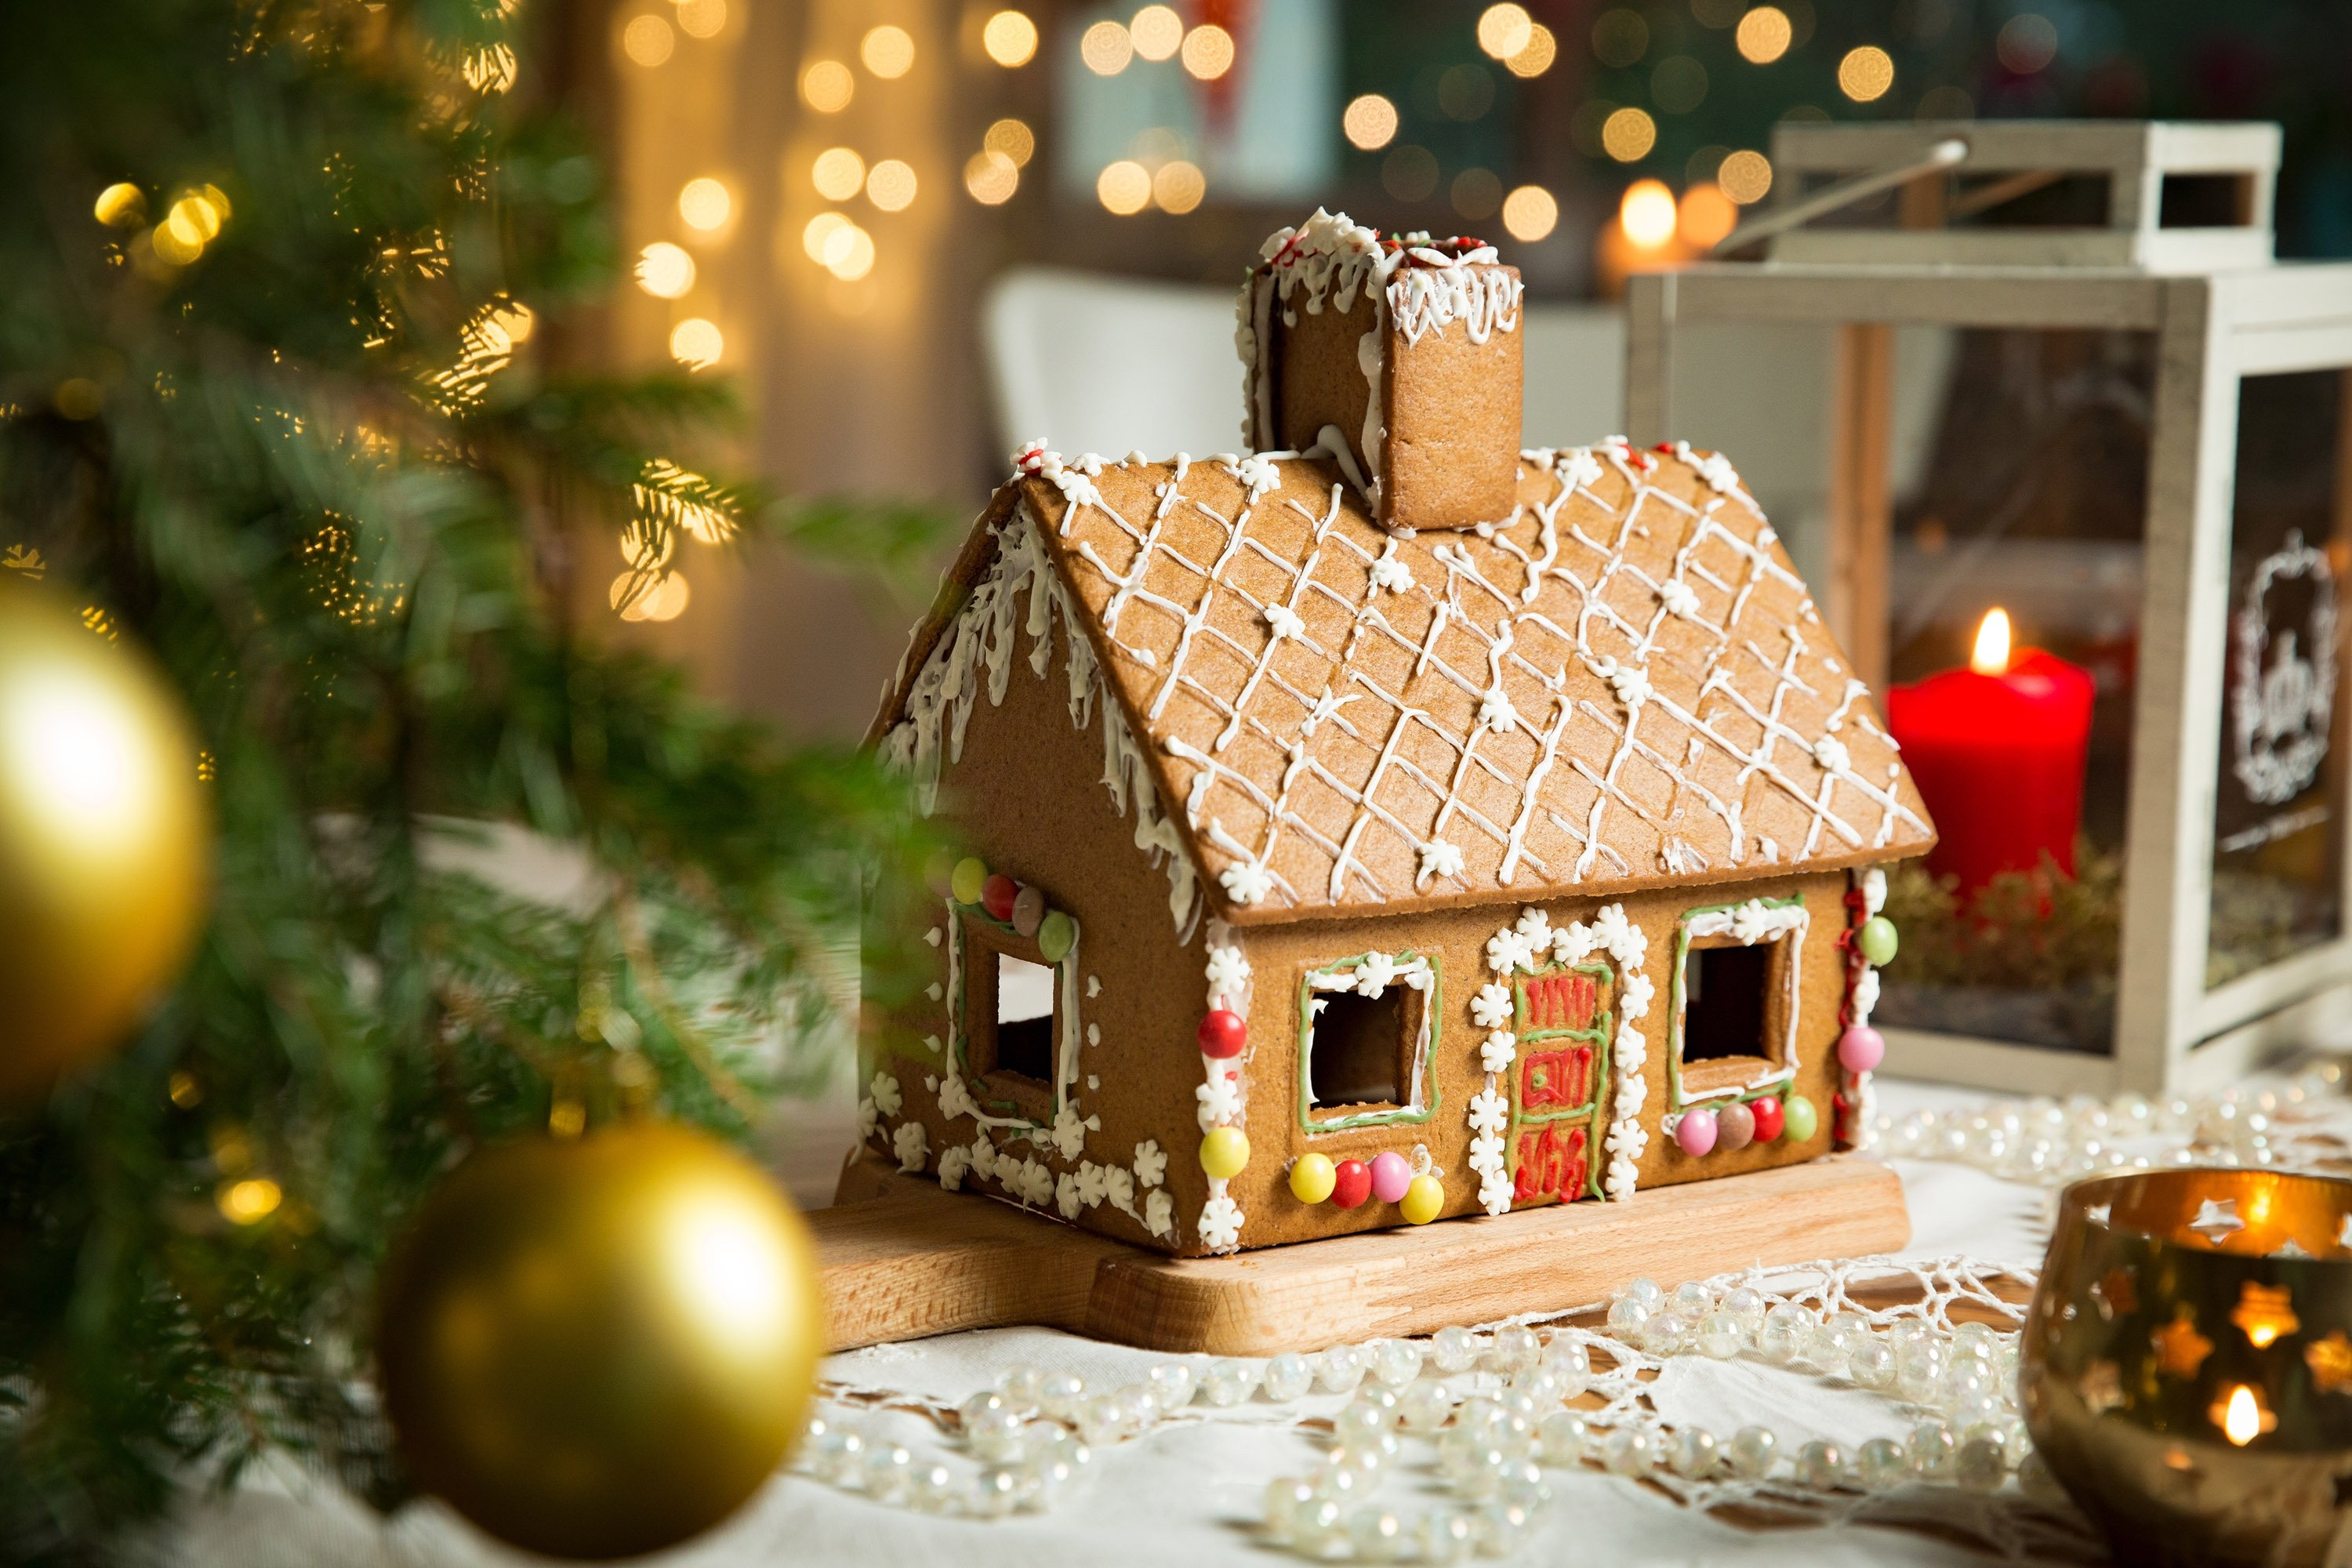 Use melted chocolate instead of icing when assembling your gingerbread house. (Shutterstock Photo)